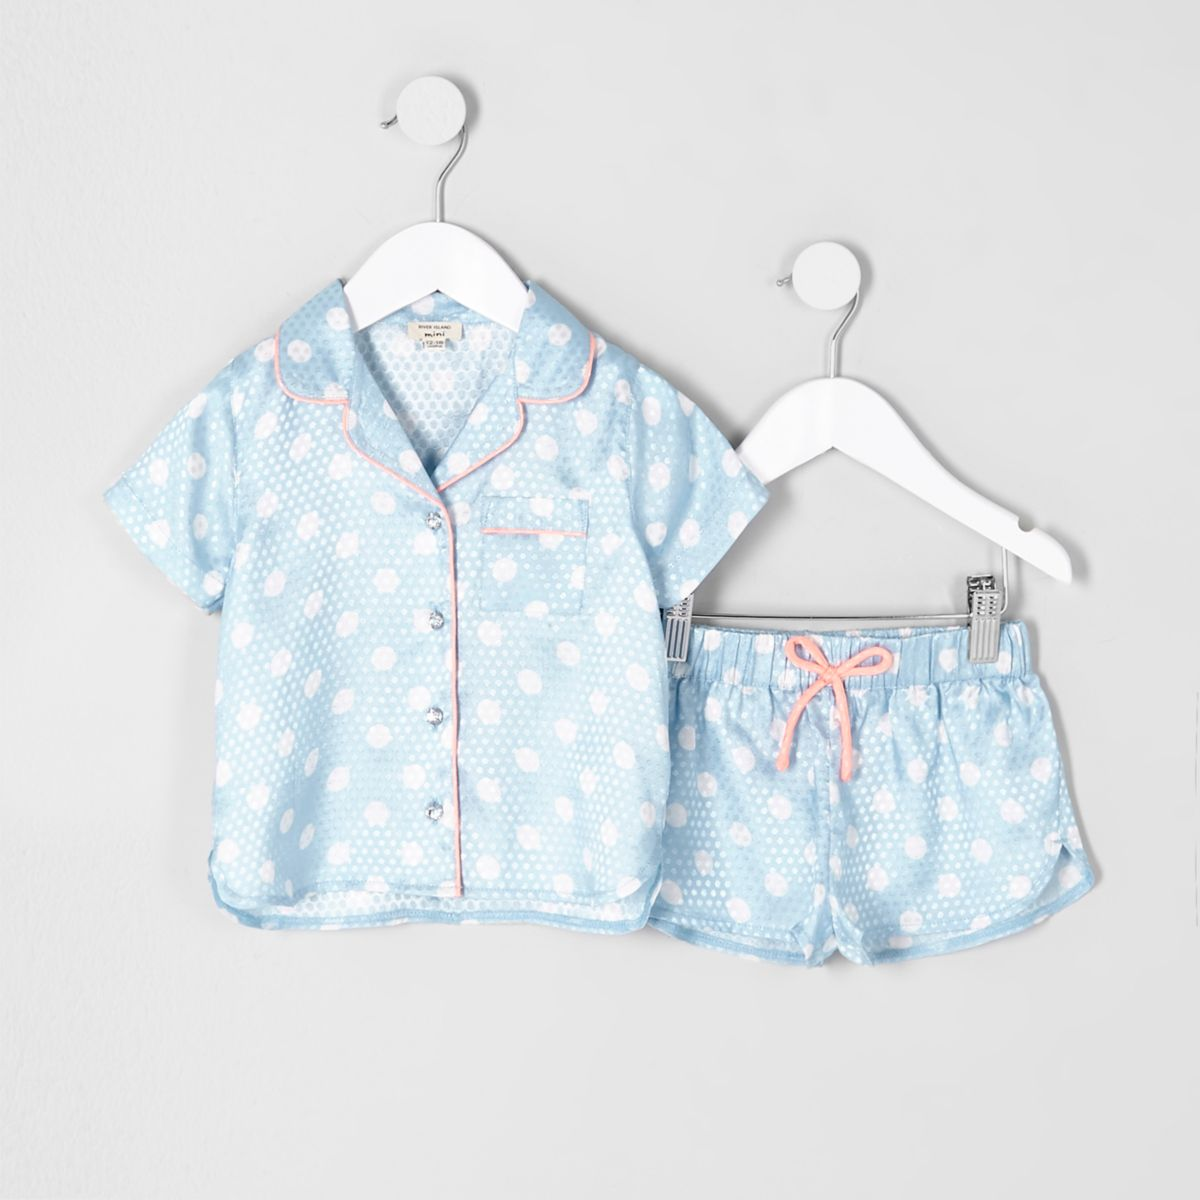 Mini girls blue polka dot pajama shirt set